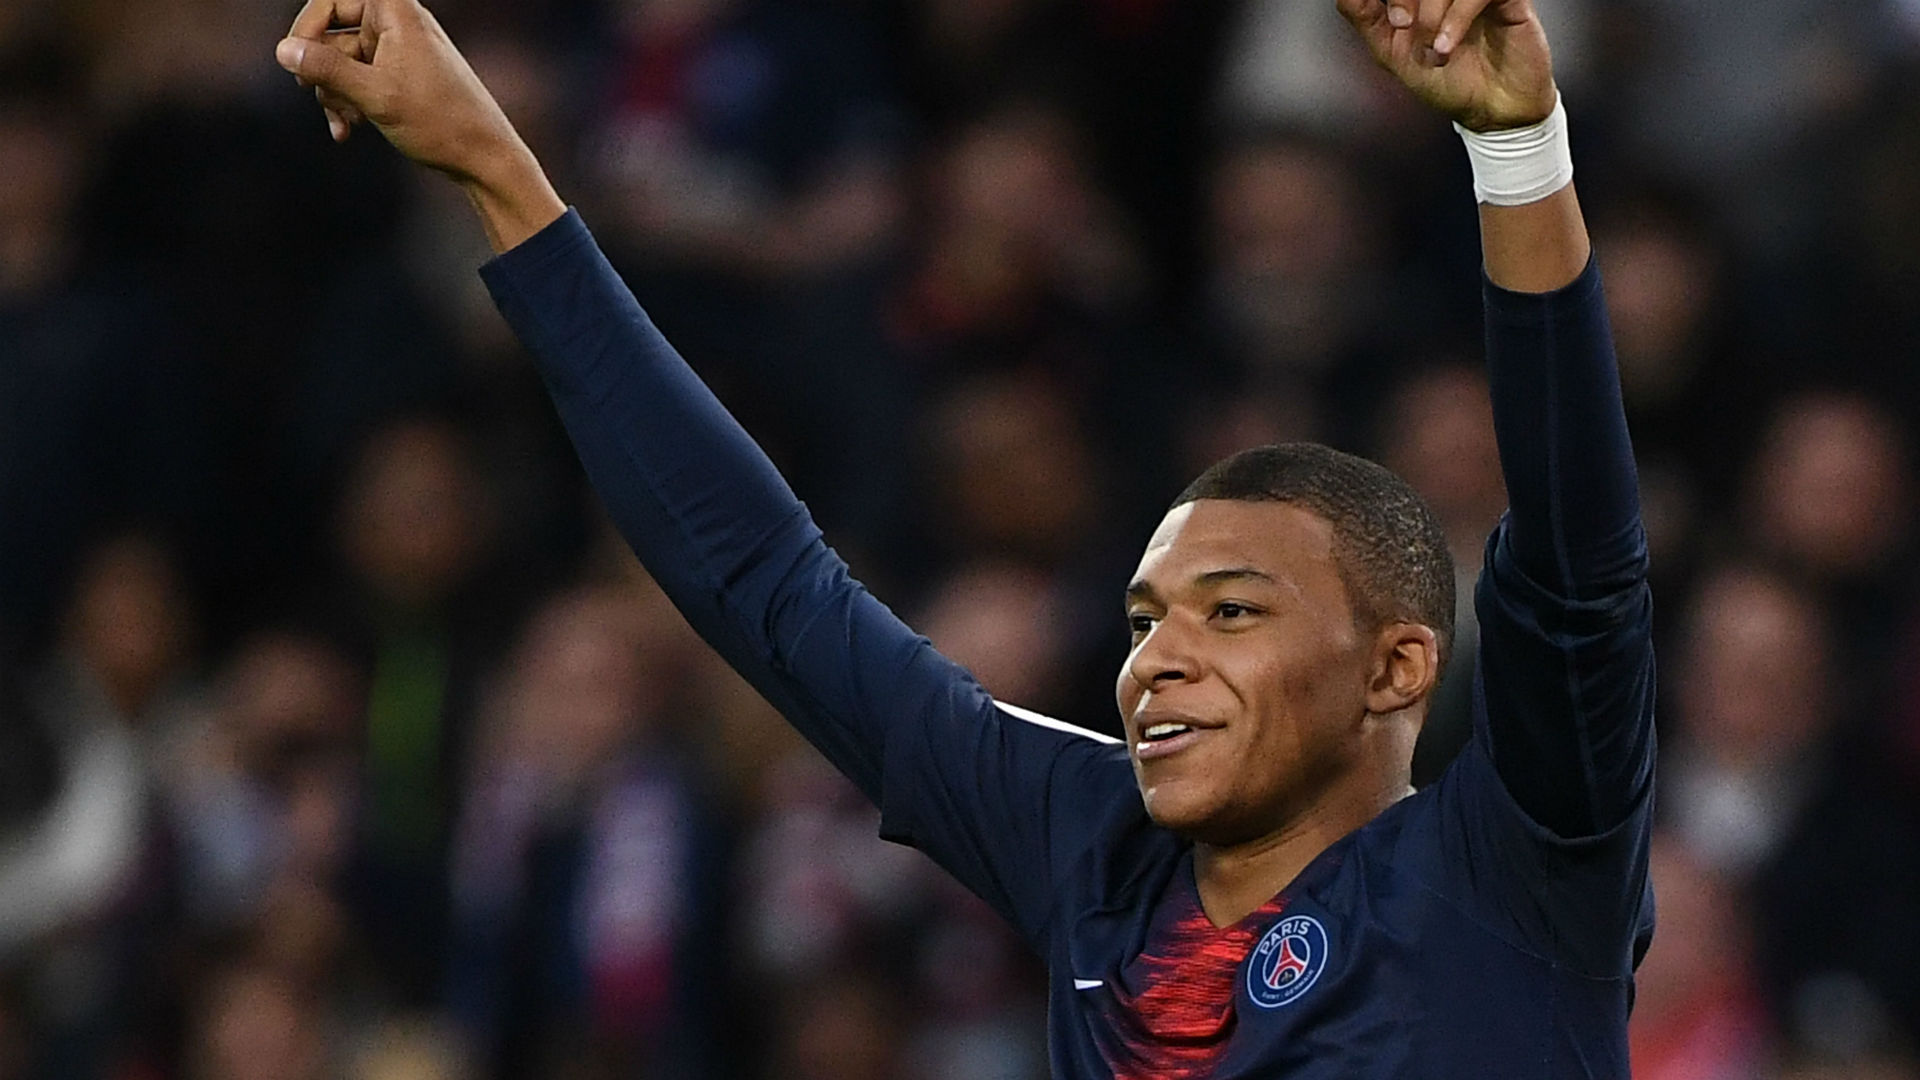 Kylian Mbappe Breaks 37-Year-Old Ligue 1 Record